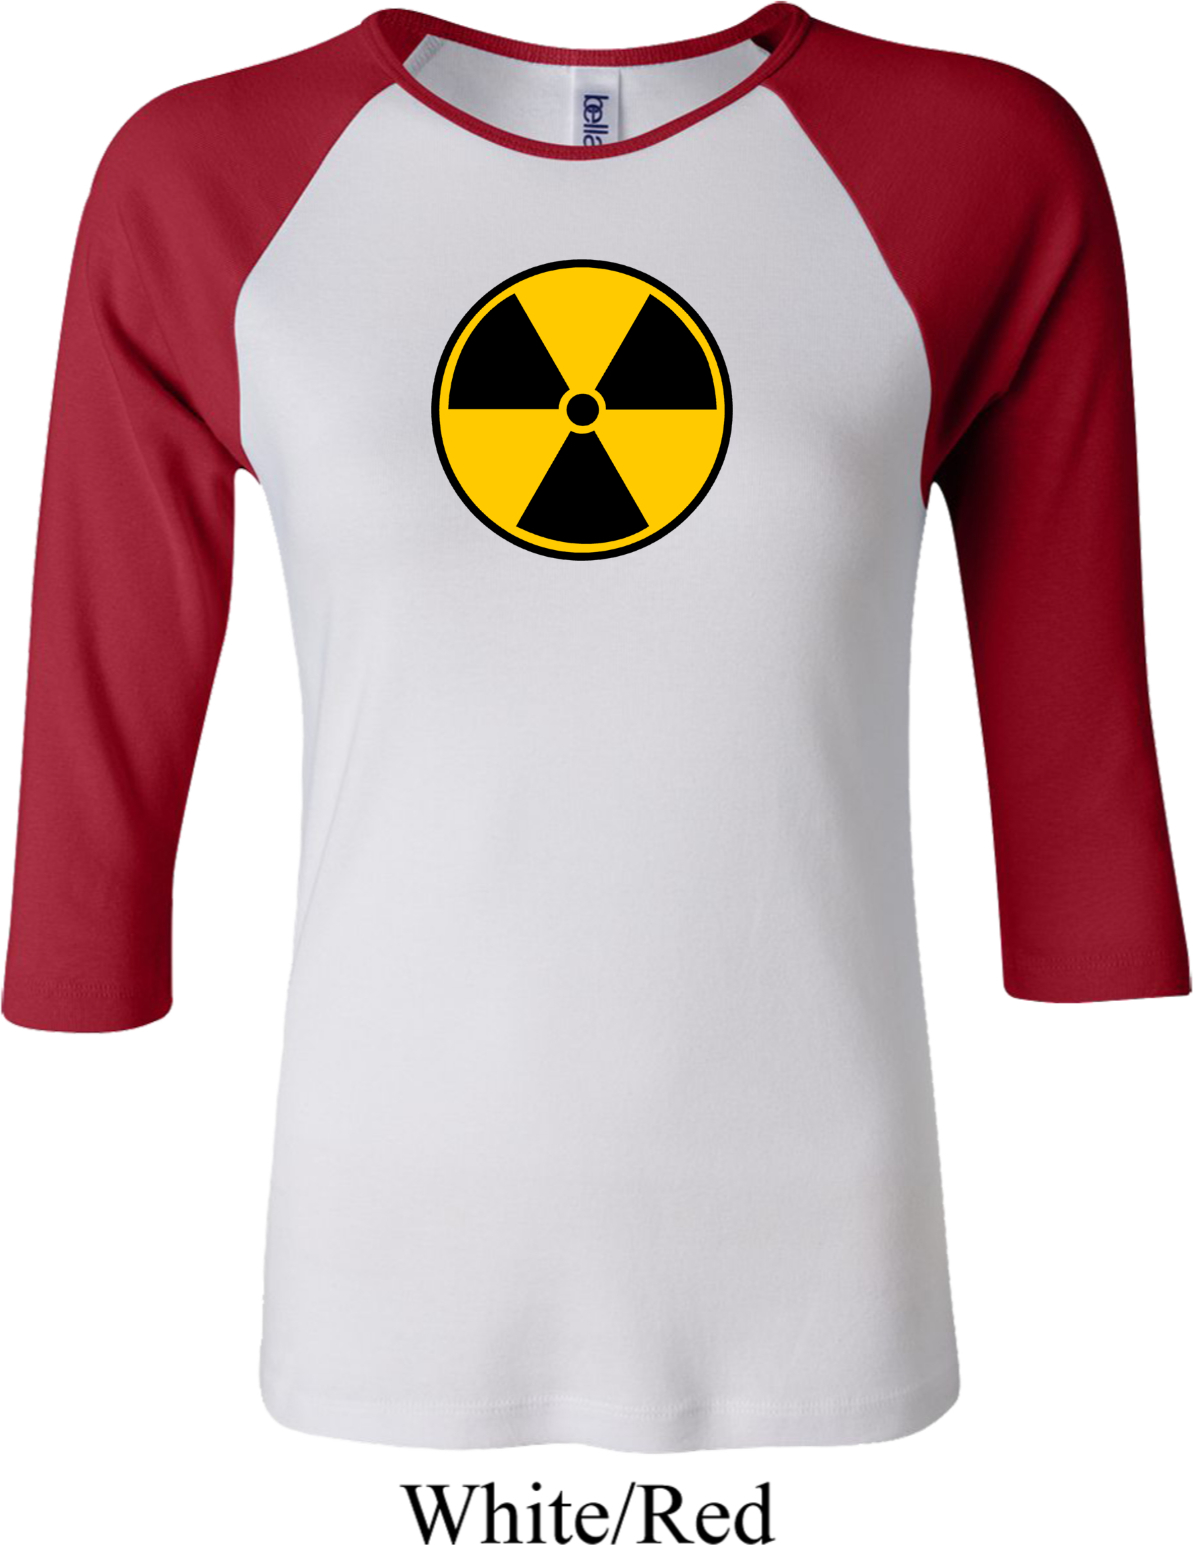 Black or White S - 2XL RADIATION SYMBOL FUNNY T-SHIRT Red